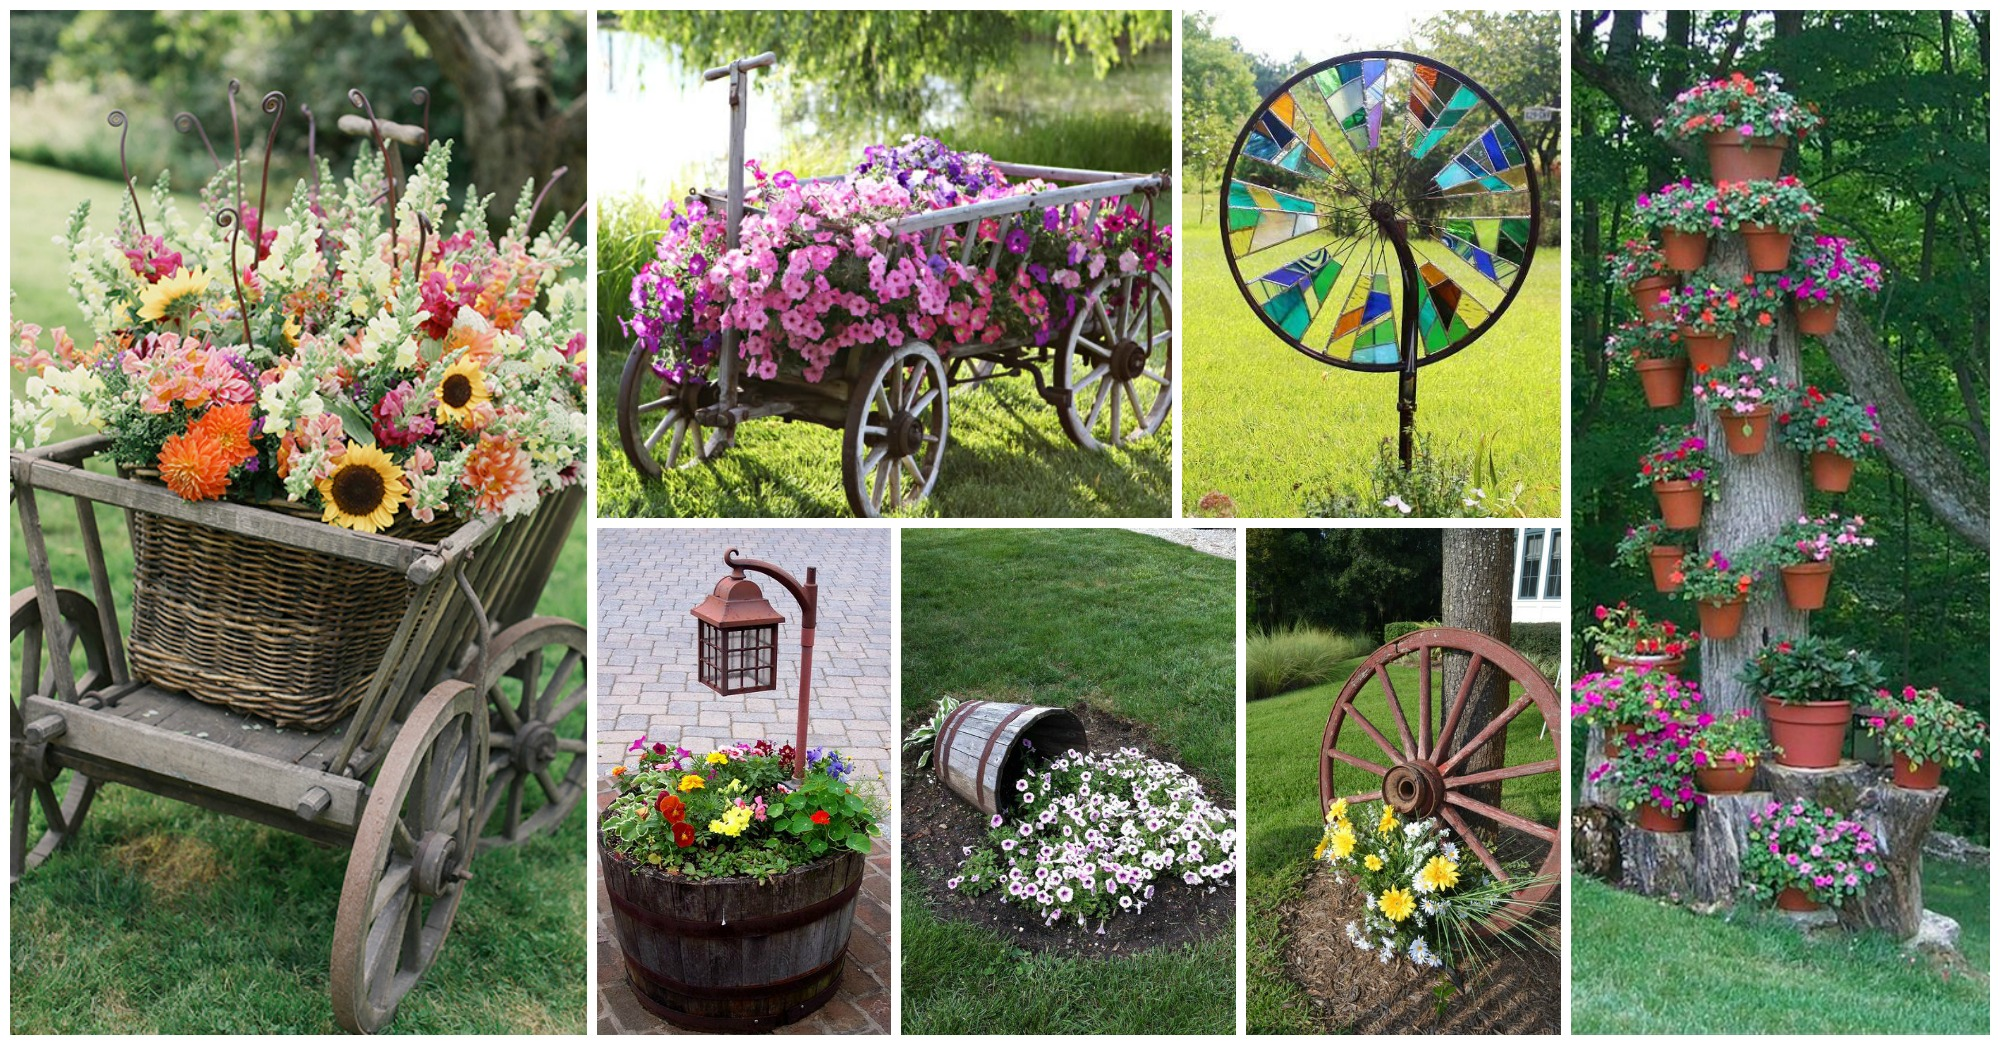 20 Amazing DIY Projects To Enhance Your Yard Without ... on Backyard Decor Ideas  id=72149